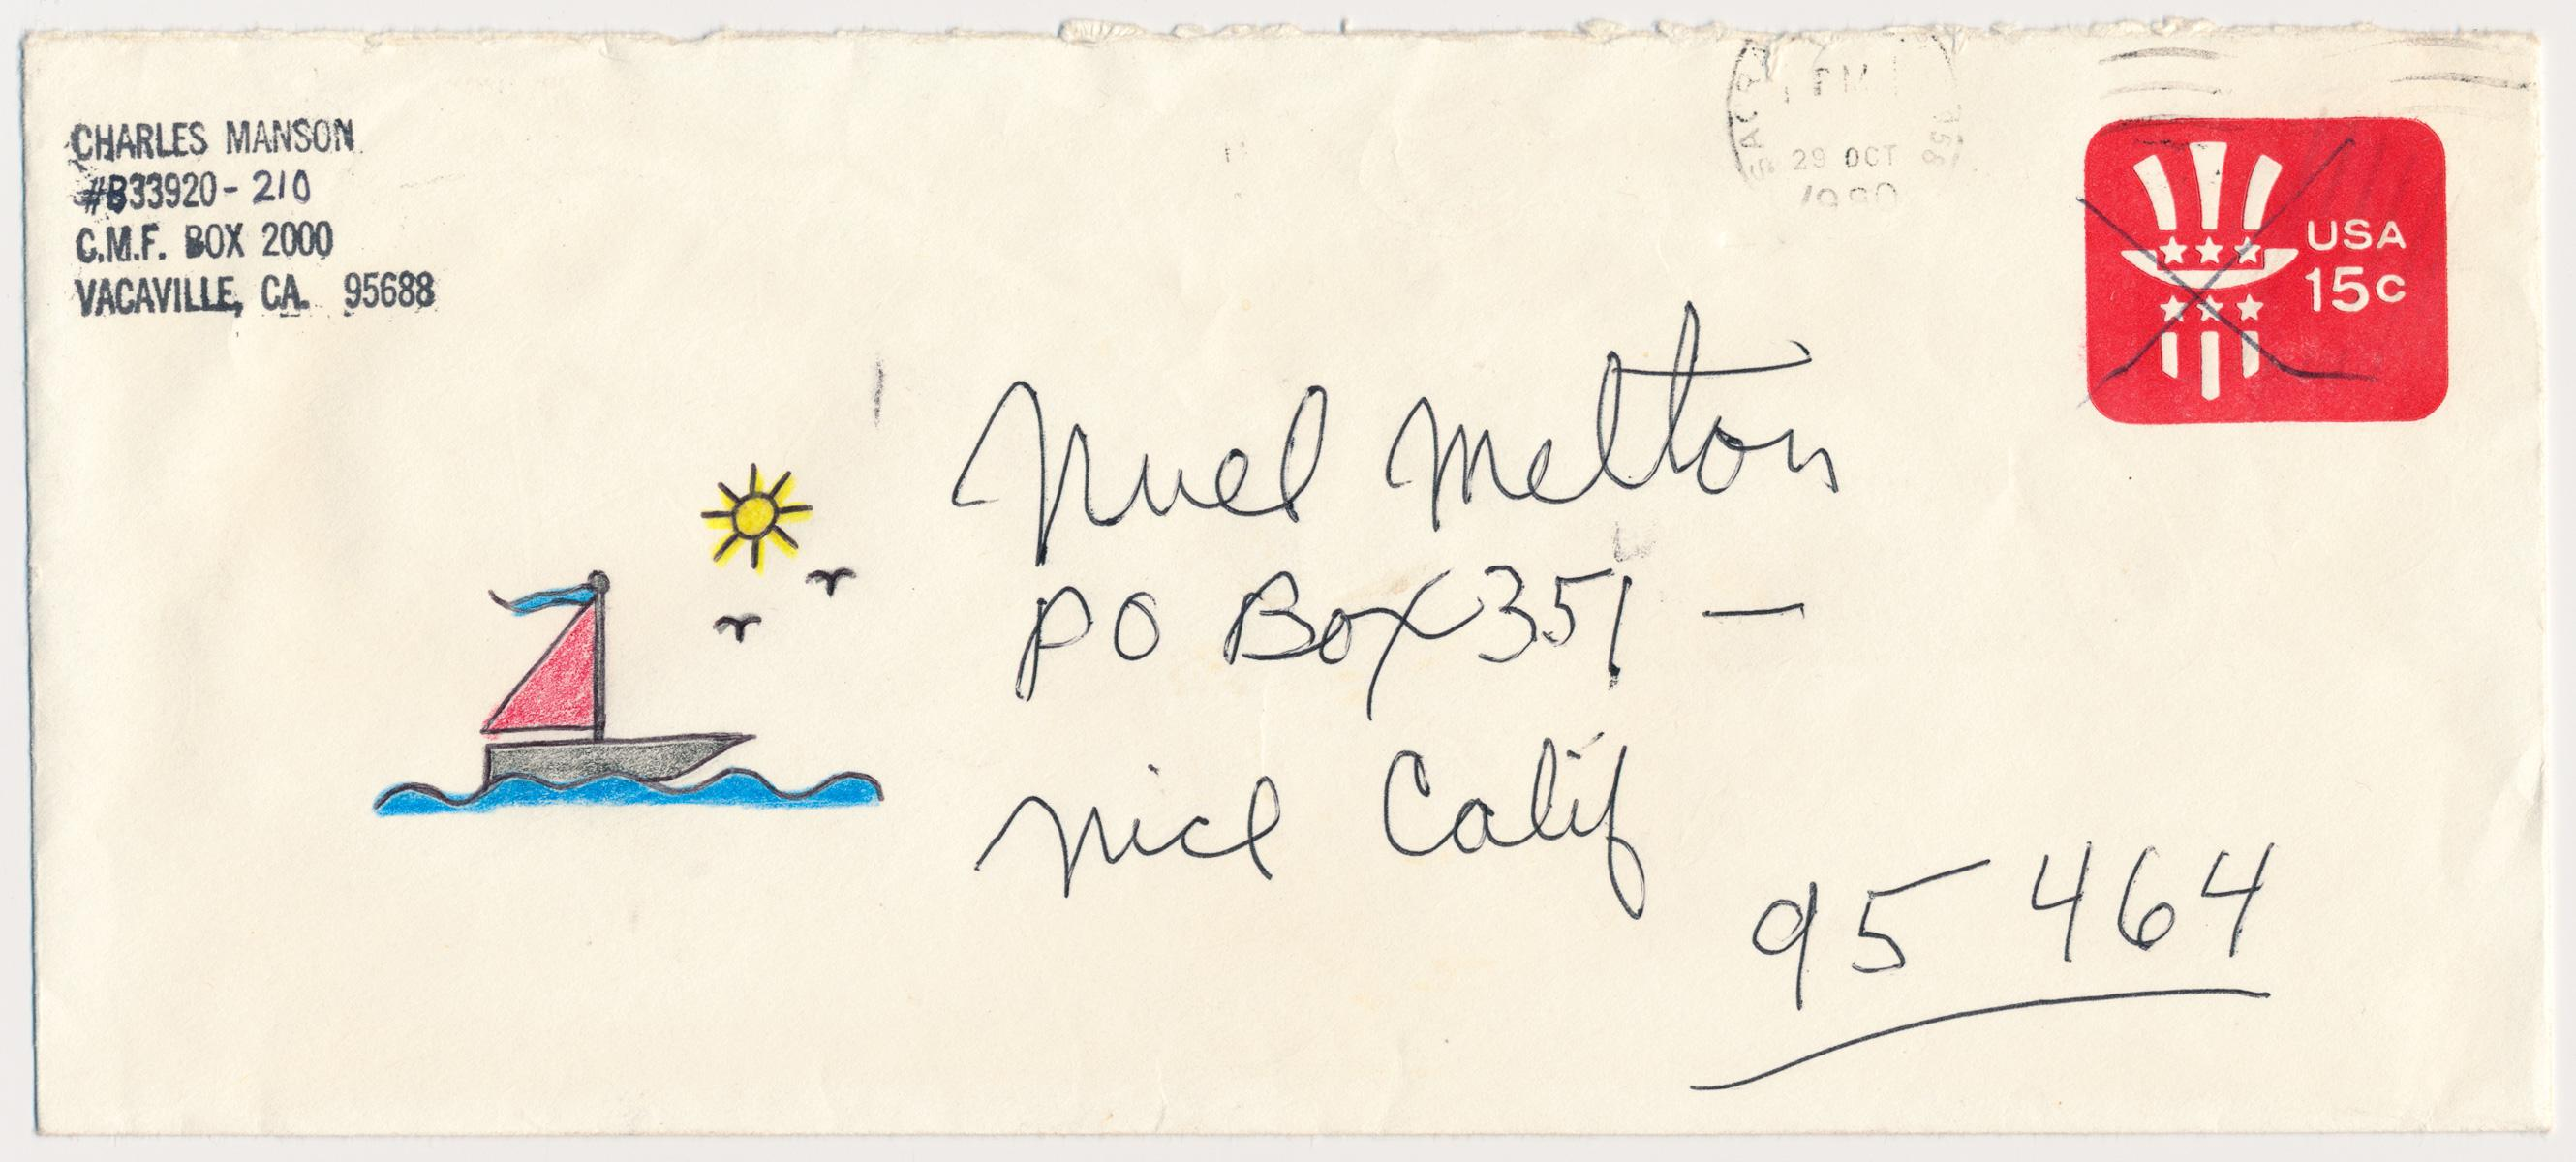 CHARLES MANSON ENVELOPE WITH ARTWORK AND ANNOTATED LETTER